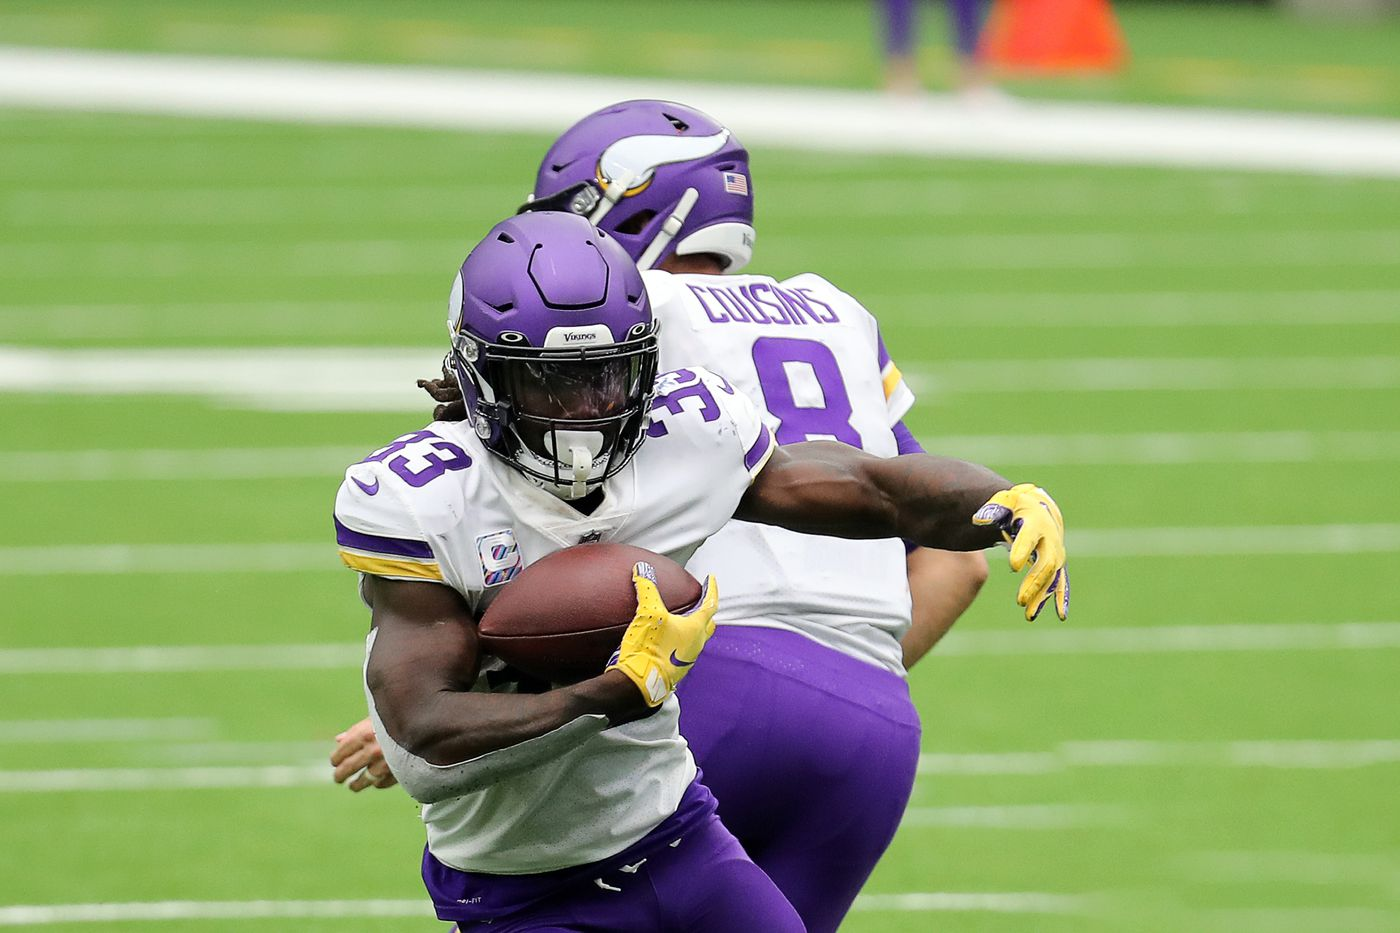 Minnesota Vikings At Seattle Seahawks Game Time Channel Radio Streaming And More Daily Norseman